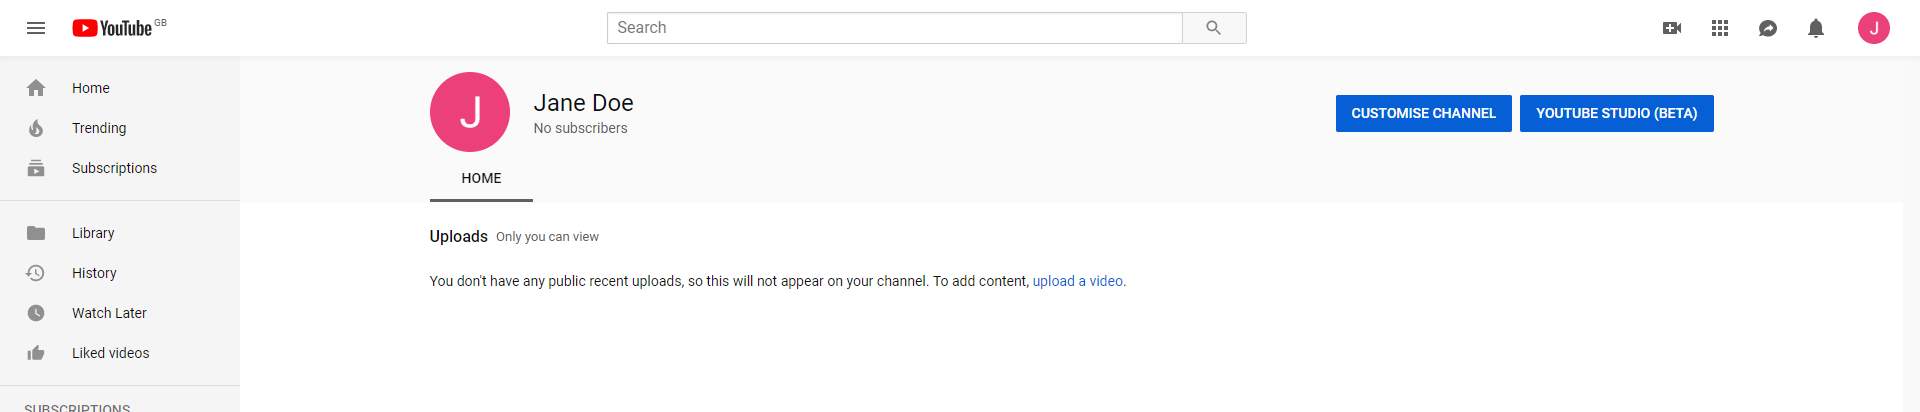 Customise your channel